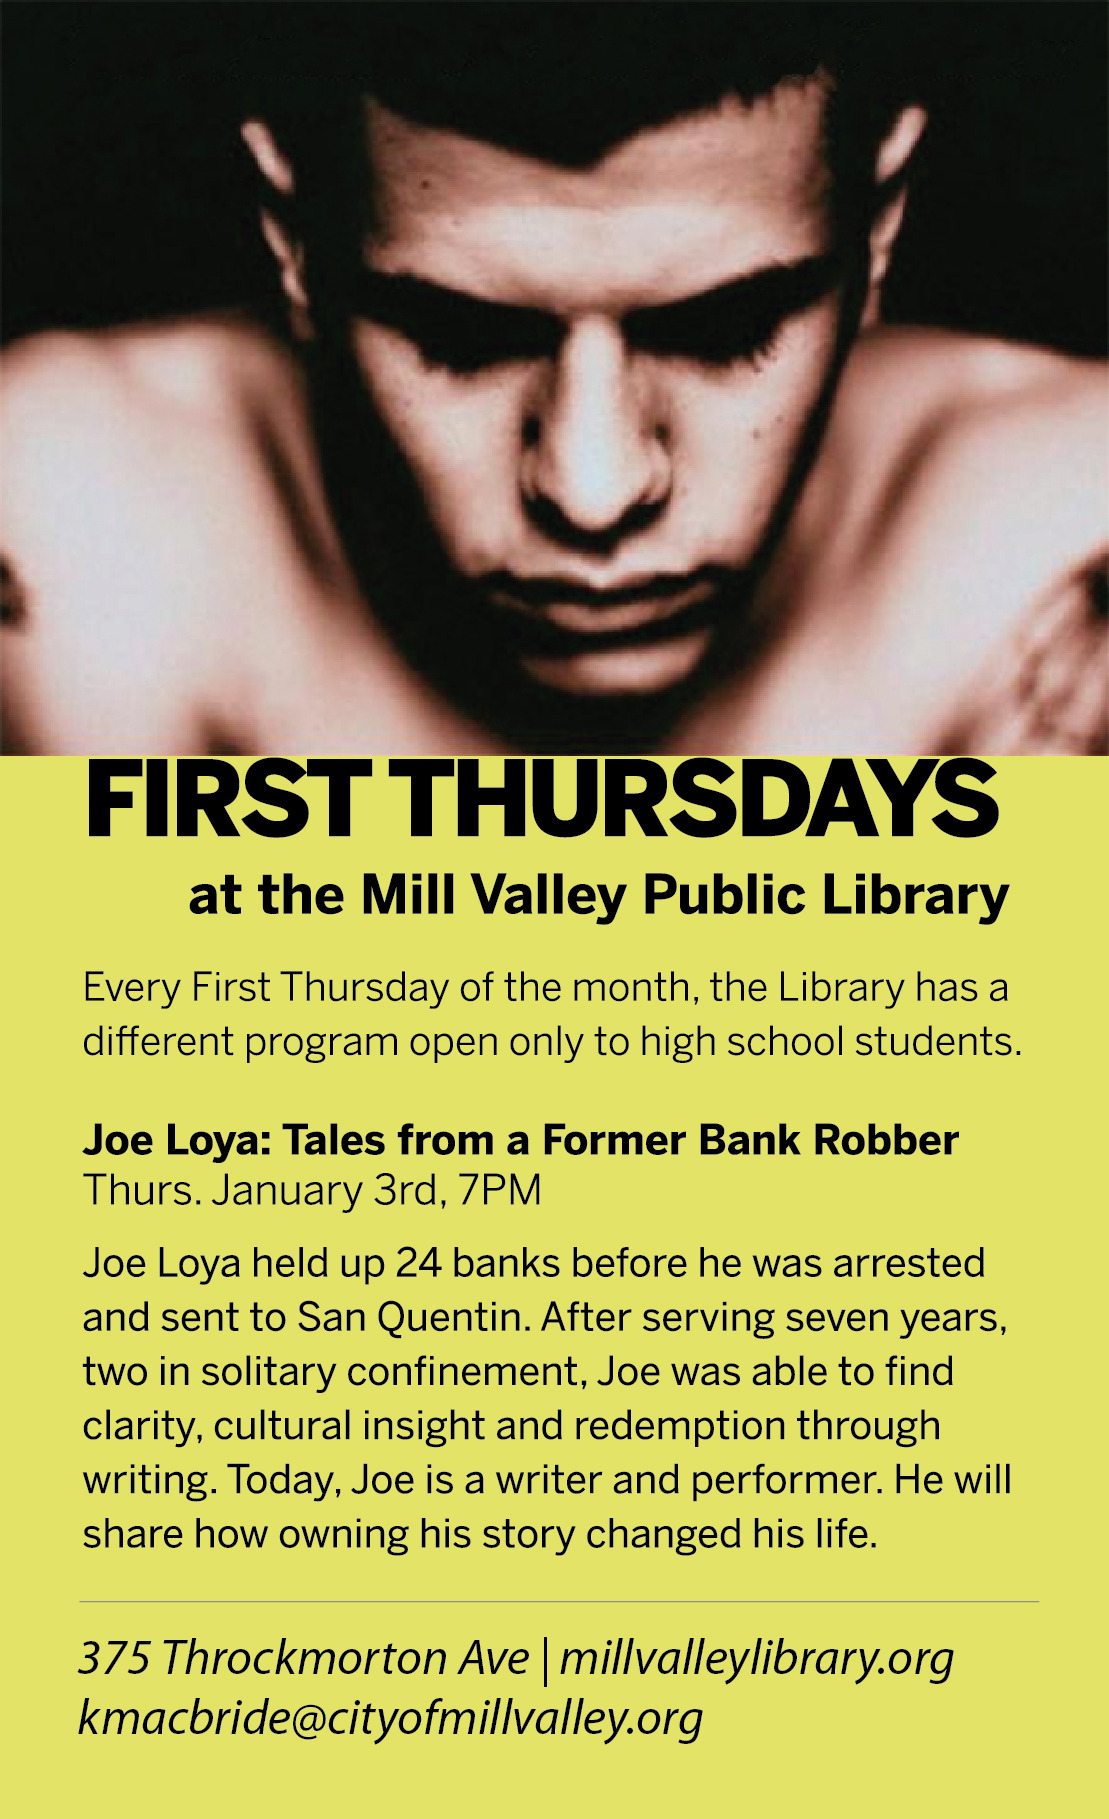 "First Thursday: Tales from a Former Bank Robber January 3rd, 2012  Mill Valley Public Library Creekside Room - 7pm - 9pm Just for High School Students In his youth, Joe Loya robbed more than a dozen banks and spent seven years in prison. Today he's on the right side of crime, living a solid life as a father, husband, a writer and performer. During the January First Thursday event, Loya will discuss how taking ownership of his story, refusing to accept people's limited expectations of him, and expressing himself through writing helped him turn his life around. Author of ""The Man Who Outgrew his Prison Cell: Confessions of a Bank Robber"", Loya will also share tips on how to really get deep into your own story so you can become a more effective storyteller.  Joe Loya's idyllic childhood came to an abrupt end when his mother was diagnosed with a terminal illness. In the two years before her death, Joe's extremely religious father became increasingly violent toward his two young sons—a contradiction that haunted Joe for years. Then, at age sixteen, Joe retaliated during a particularly severe beating and stabbed his father in the neck. For Joe, this was the starting point of a life of crime, and after holding up his twenty-fourth bank, he was arrested and served seven years in prison. He continued his criminal behavior behind bars and was eventually placed in solitary confinement. Alone in his cell for two years, Joe was finally able to forgive his father, finding clarity, cultural insight, and redemption through writing. Food and beverages provided. Click here to register."